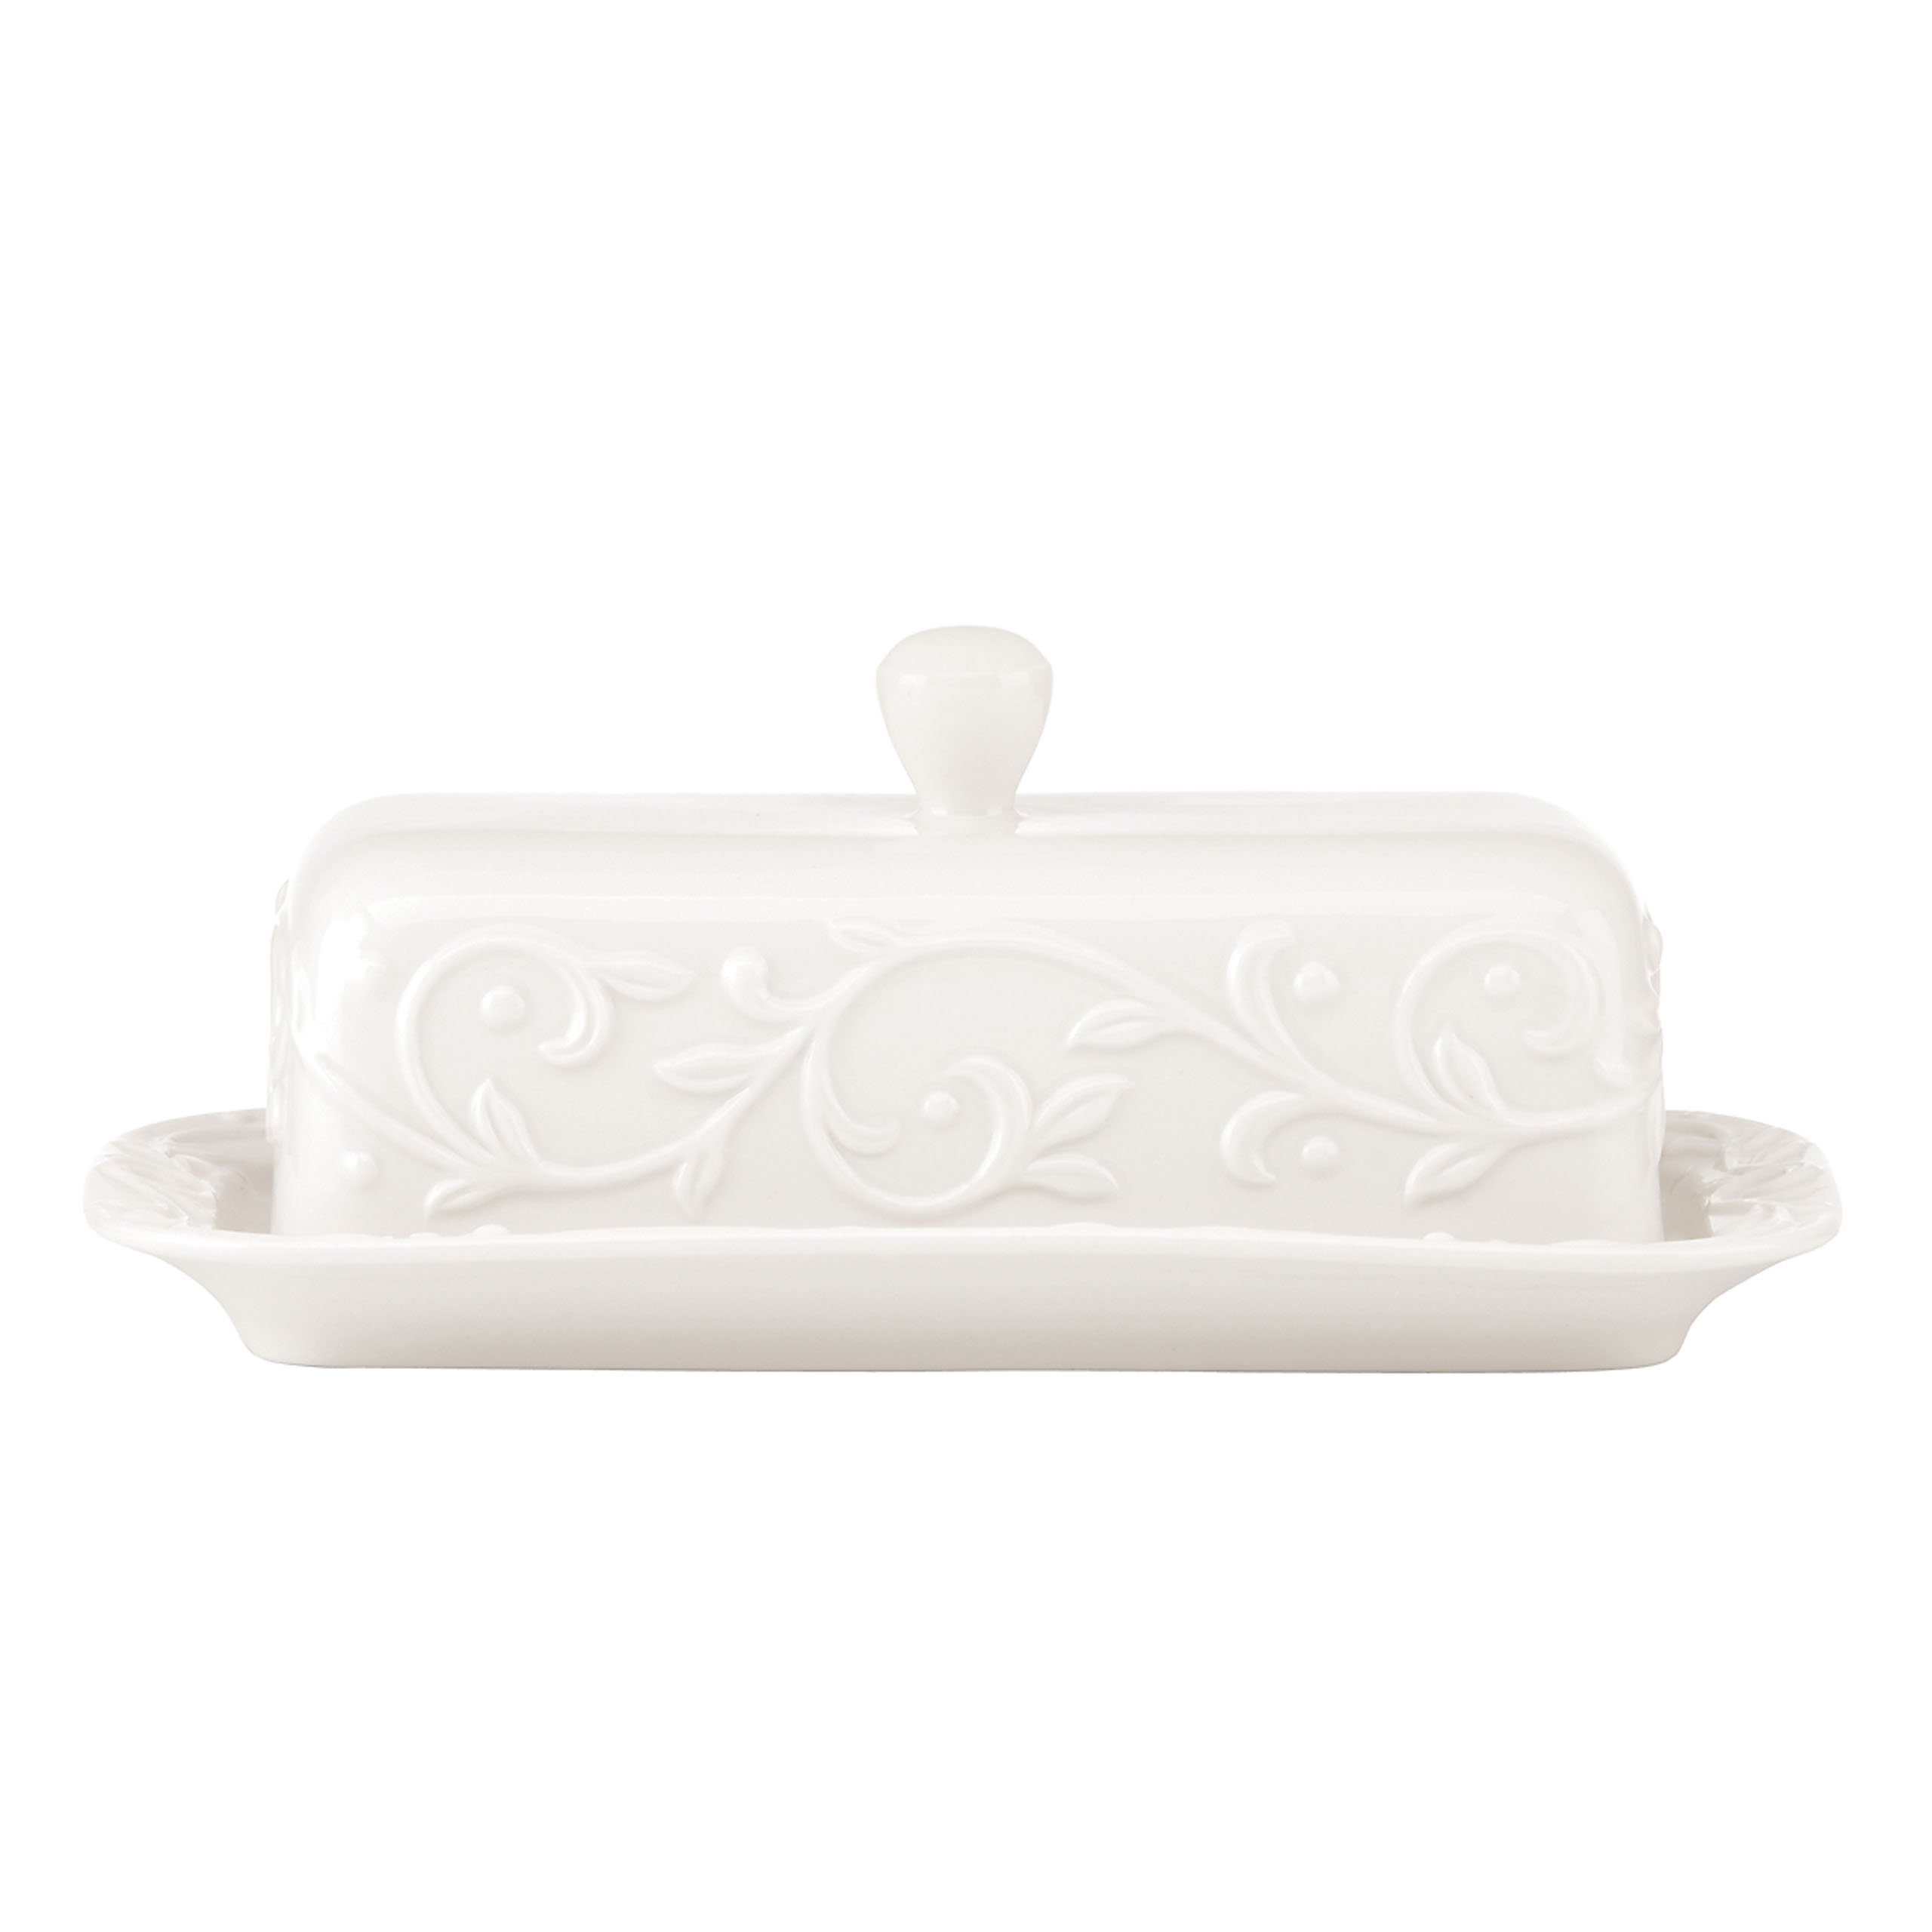 Lenox Opal Innocence Carved Butter Dish, White